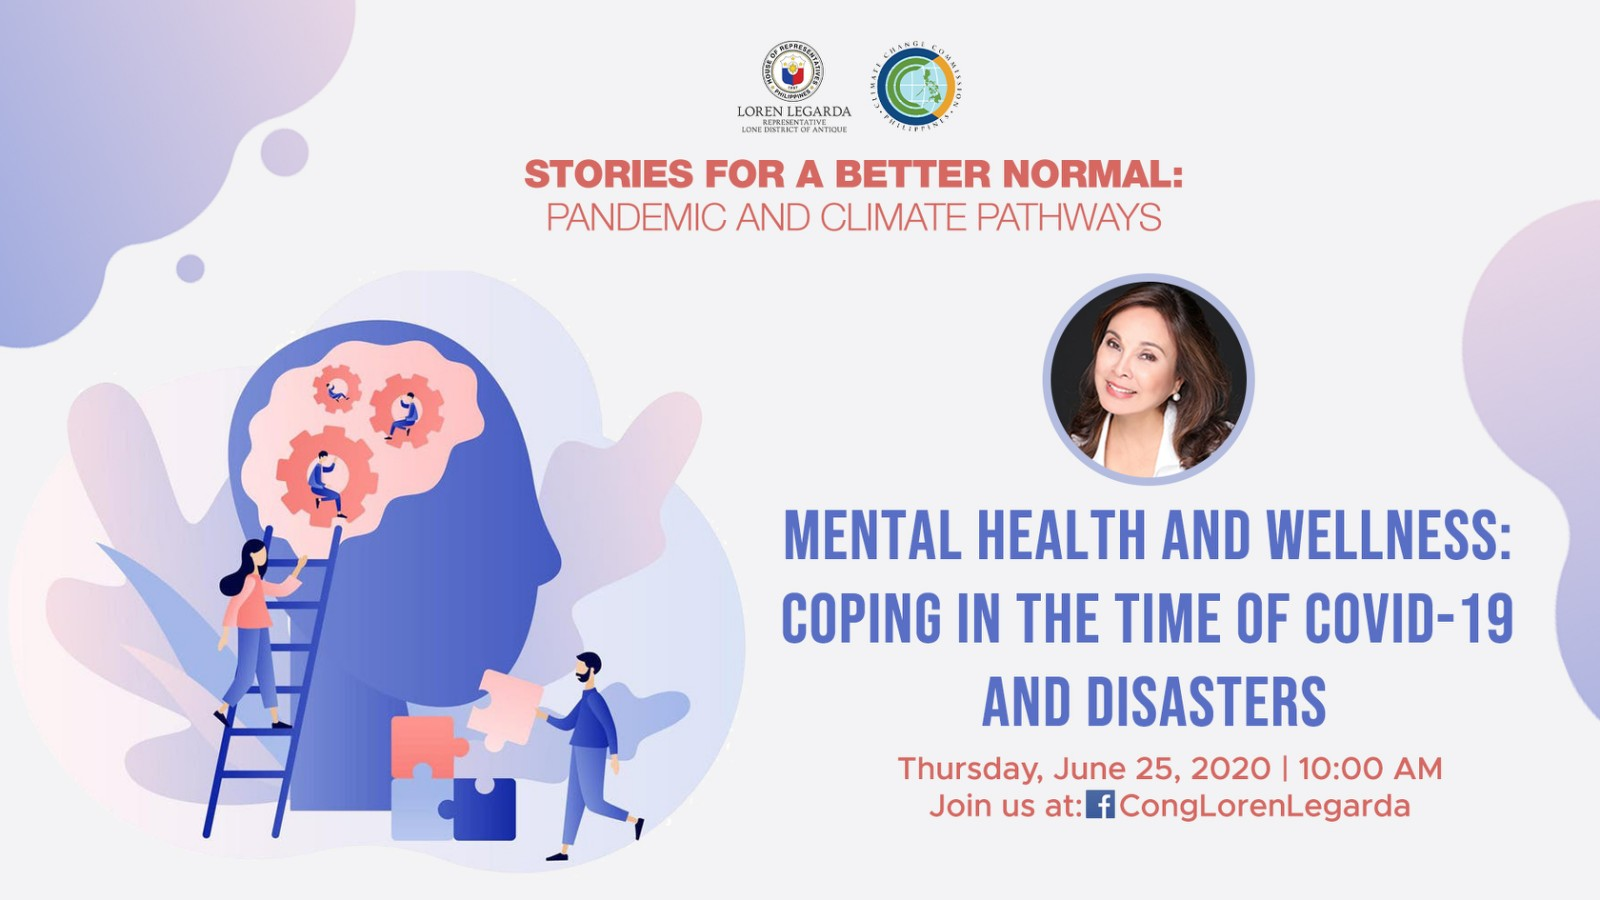 Mental Health and Wellness: Coping in the Time of COVID-19 and Disasters